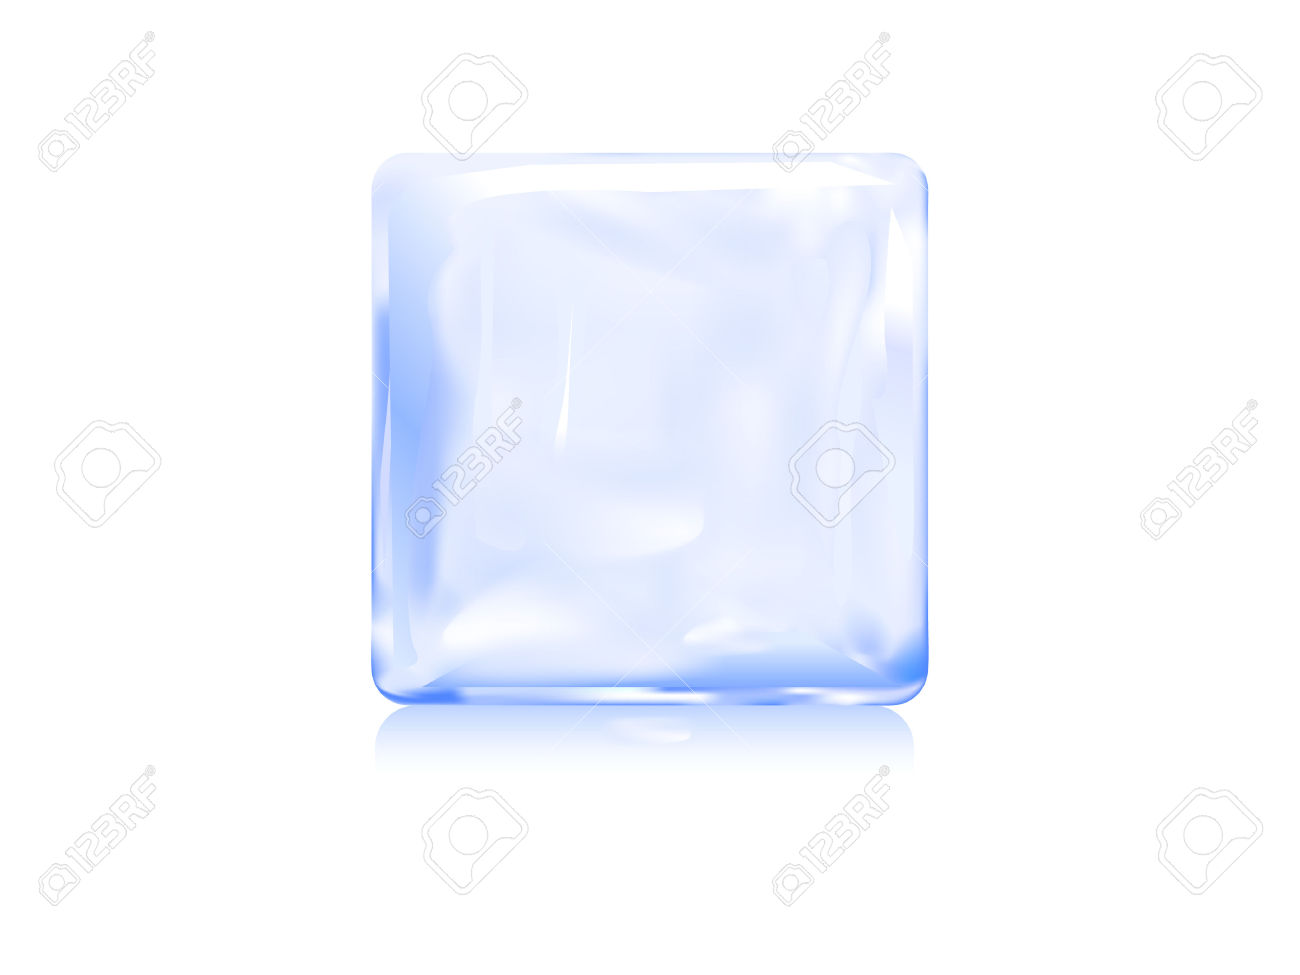 Block of ice clipart clip art stock Ice block clipart - ClipartFest clip art stock